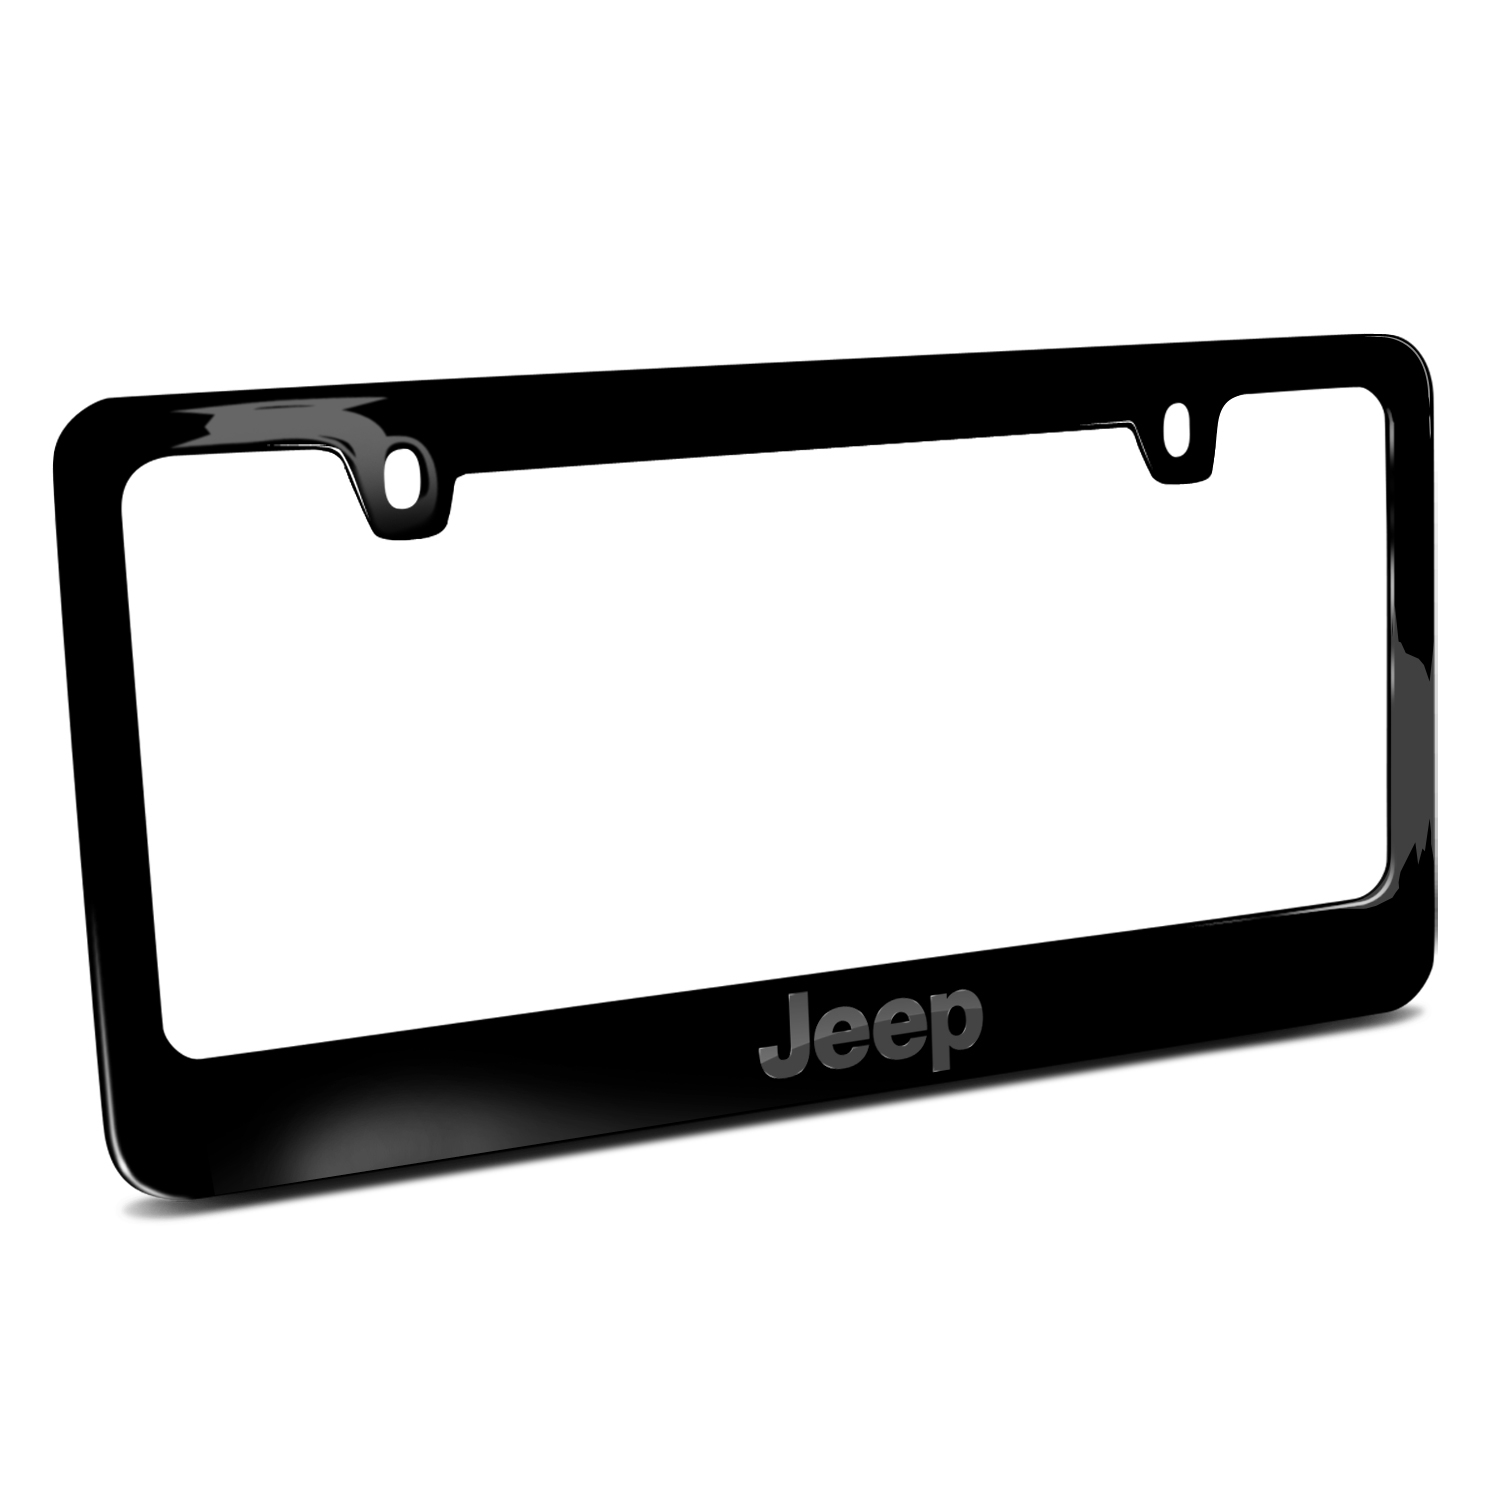 Jeep in 3D Black on Black Metal License Plate Frame